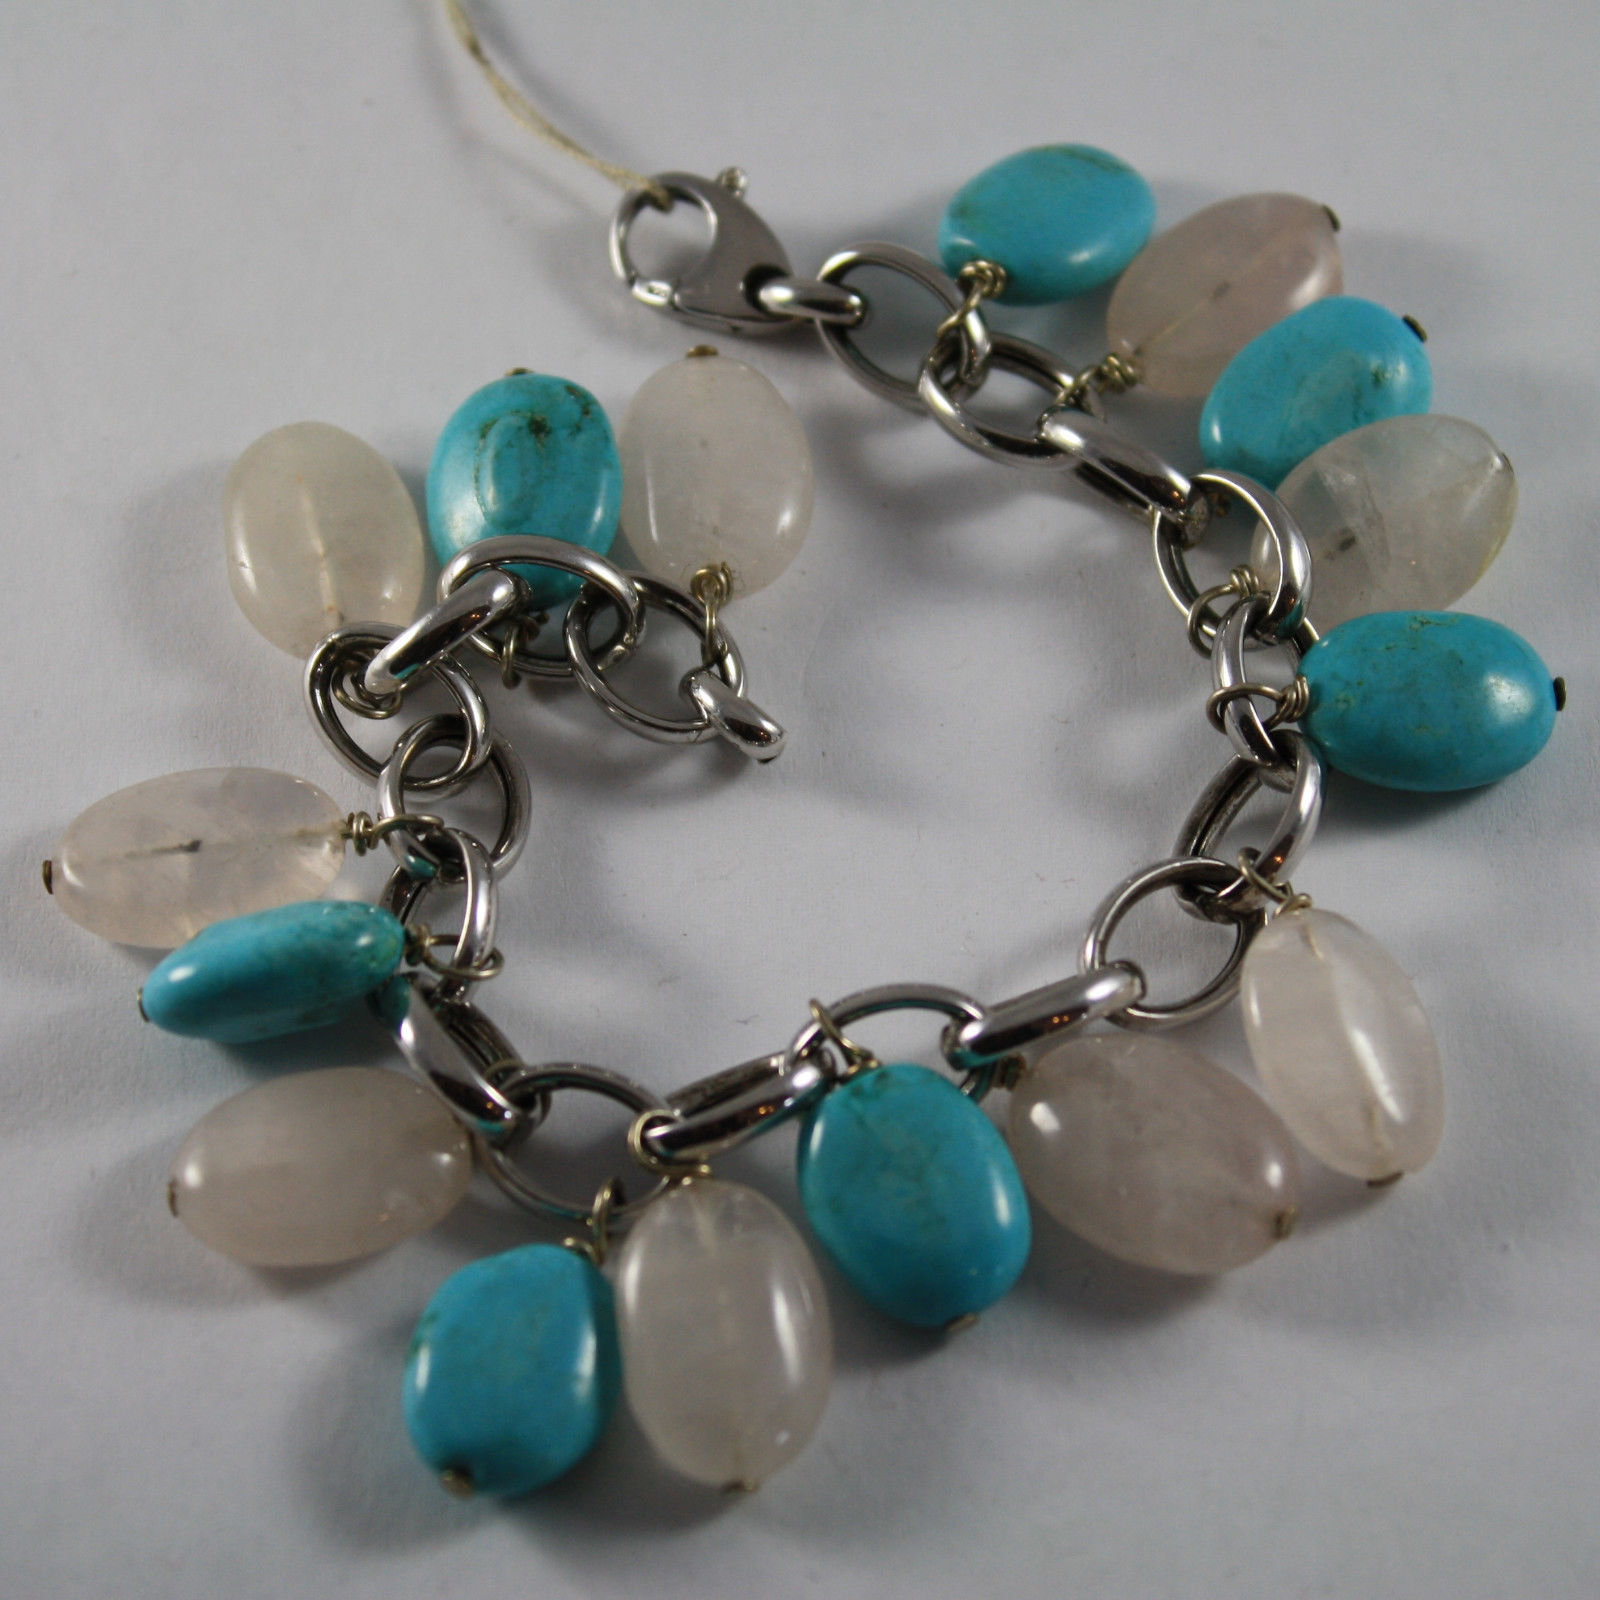 .925 RHODIUM SILVER BRACELET WITH TURQUOISE AND PINK QUARTZ